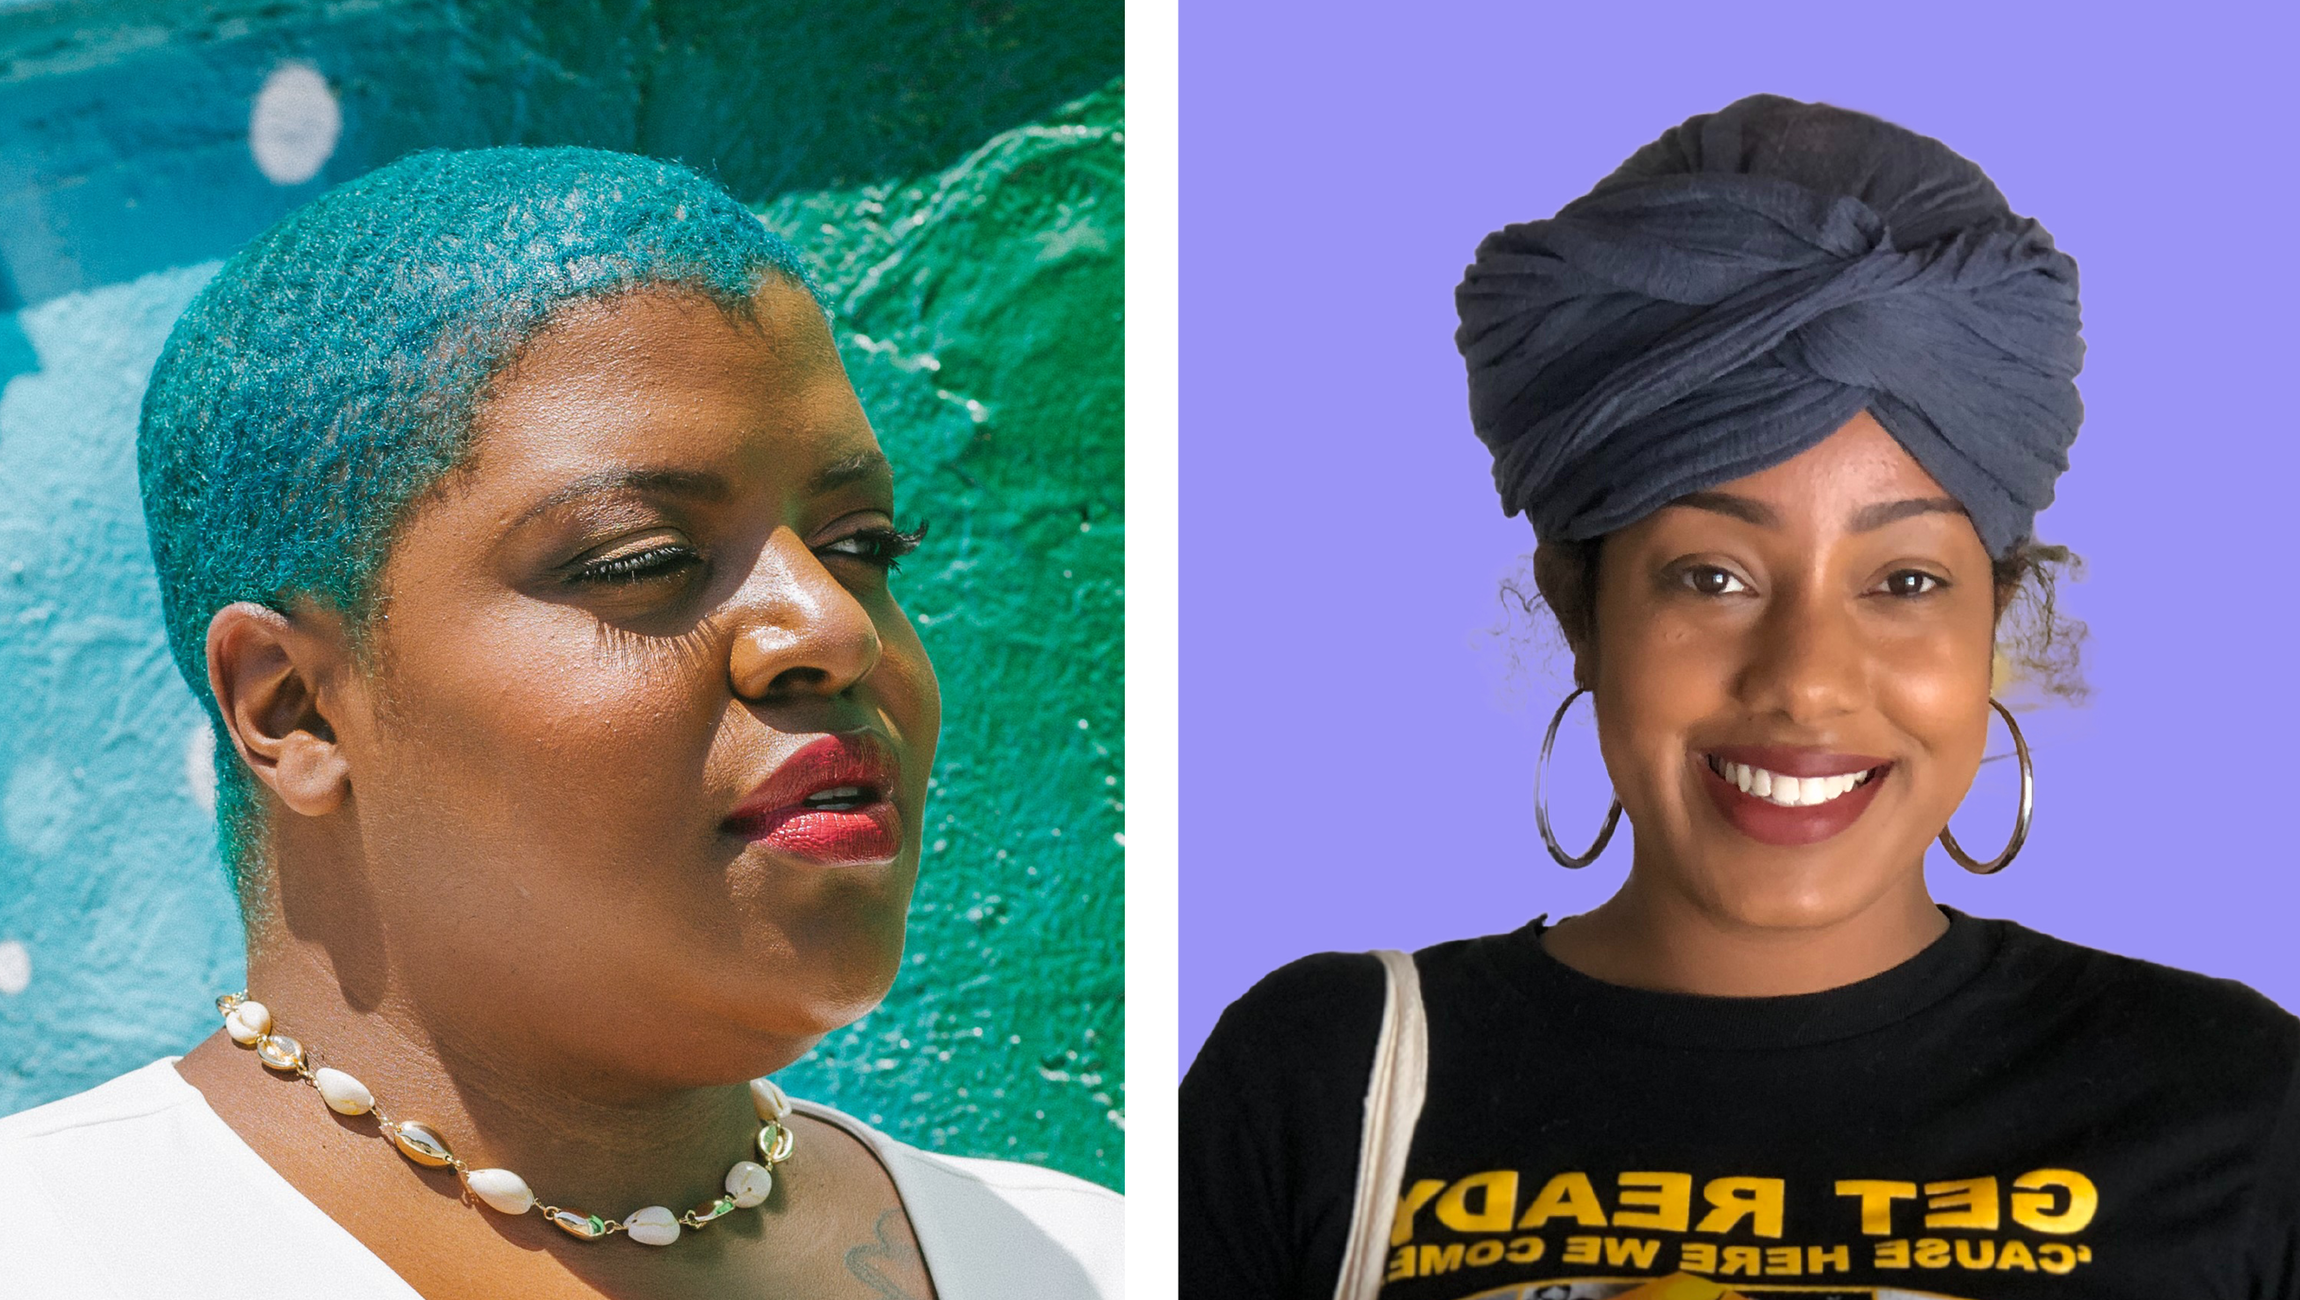 LEFT TO RIGHT: bridgette bianca. Photo by: Kaye McCoy. Asha Grant. Photo by: Celia Ward-Wallace of South LA Cafe.